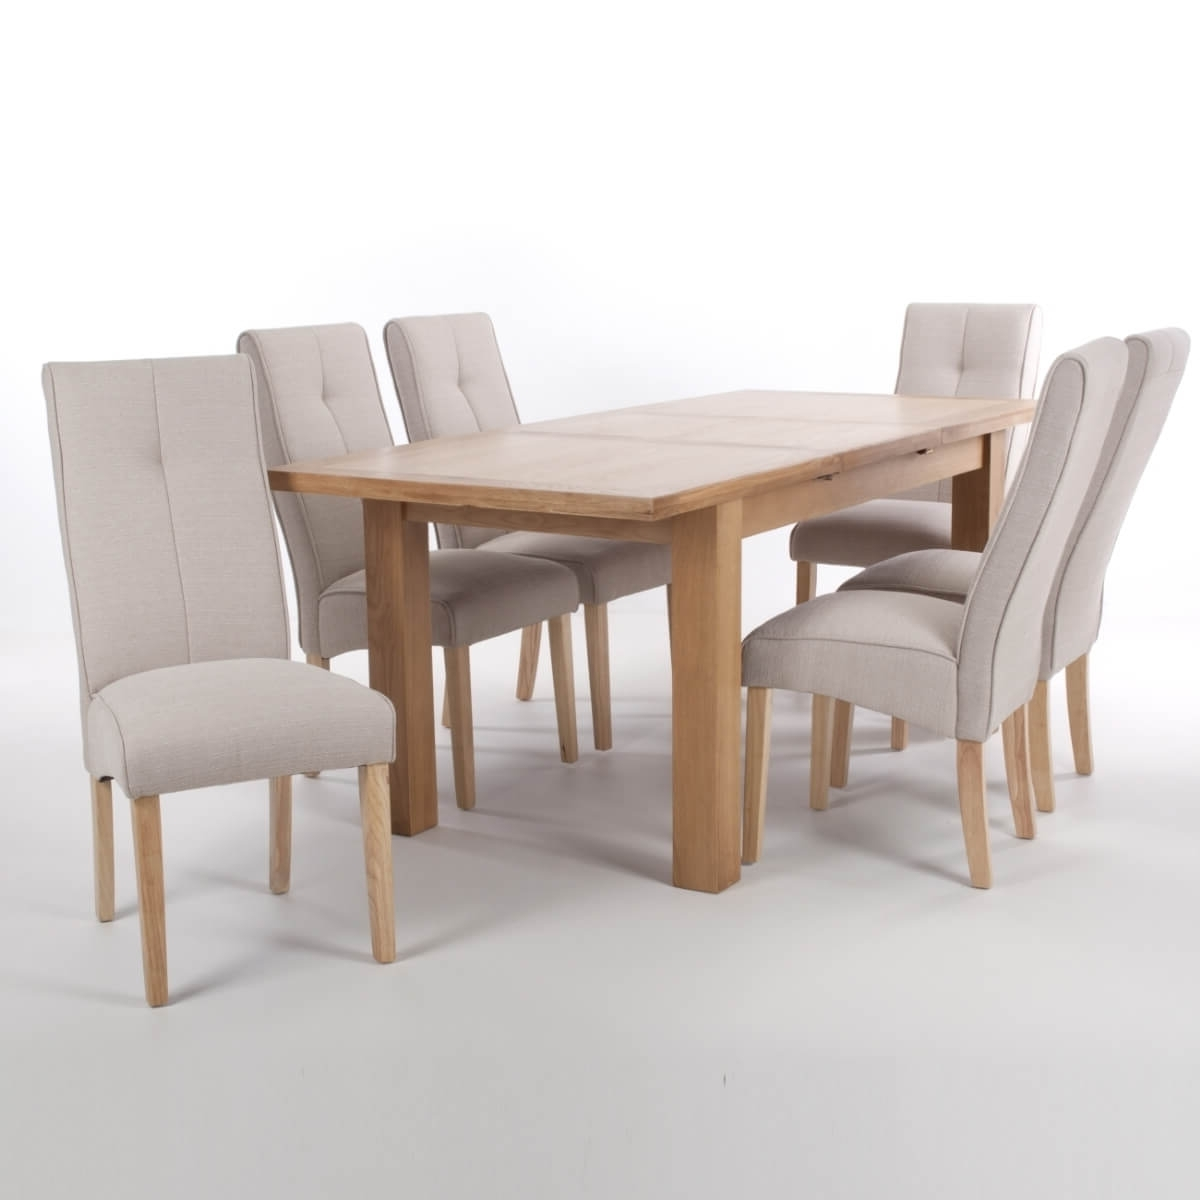 2018 Cream And Oak Dining Tables with regard to Dining Set - Solid Oak Extending Dining Table And 6 Linea Cream